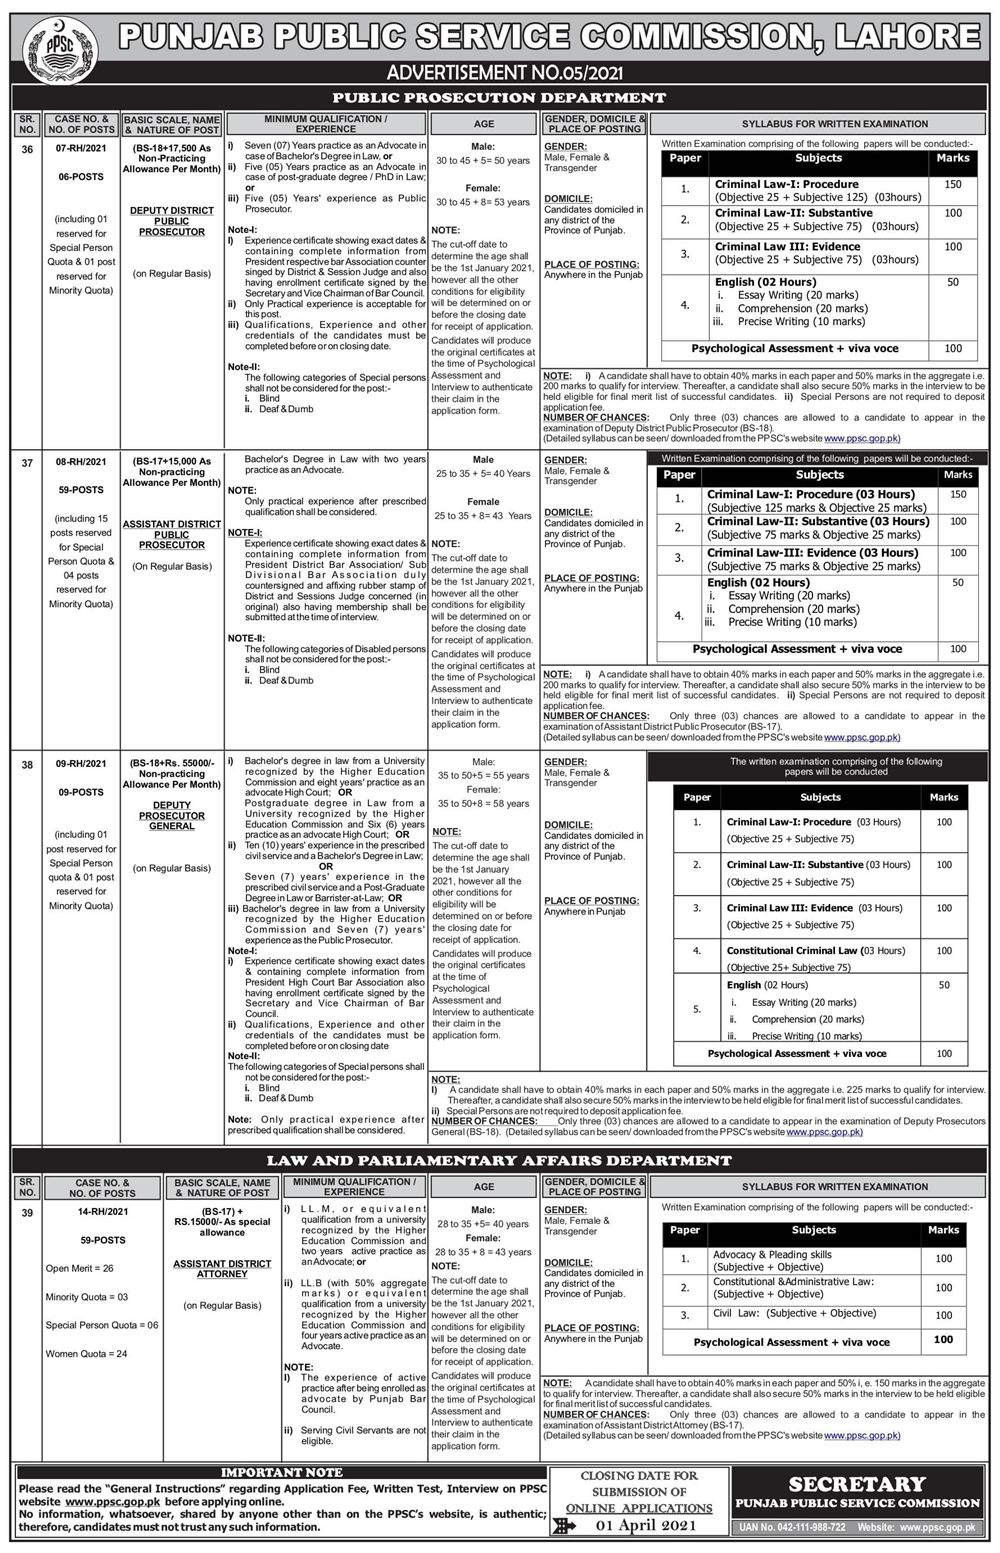 PPSC Jobs 2021 Apply Online Consolidated Advertisement No 05/2021 Latest